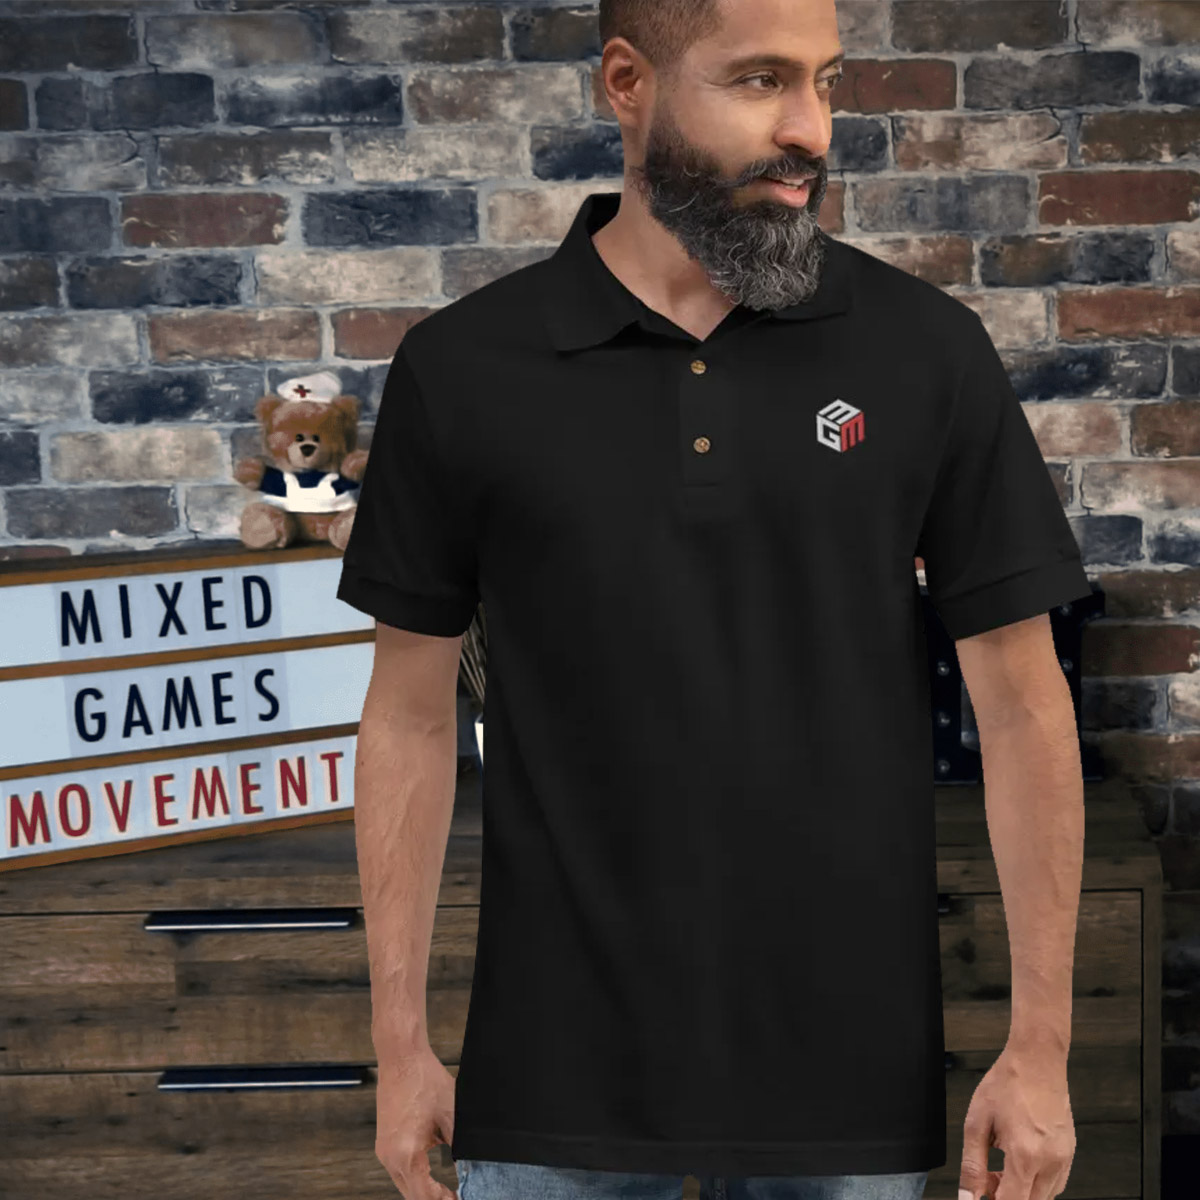 Mixed Games Movement Polo Shirt - Male Feature